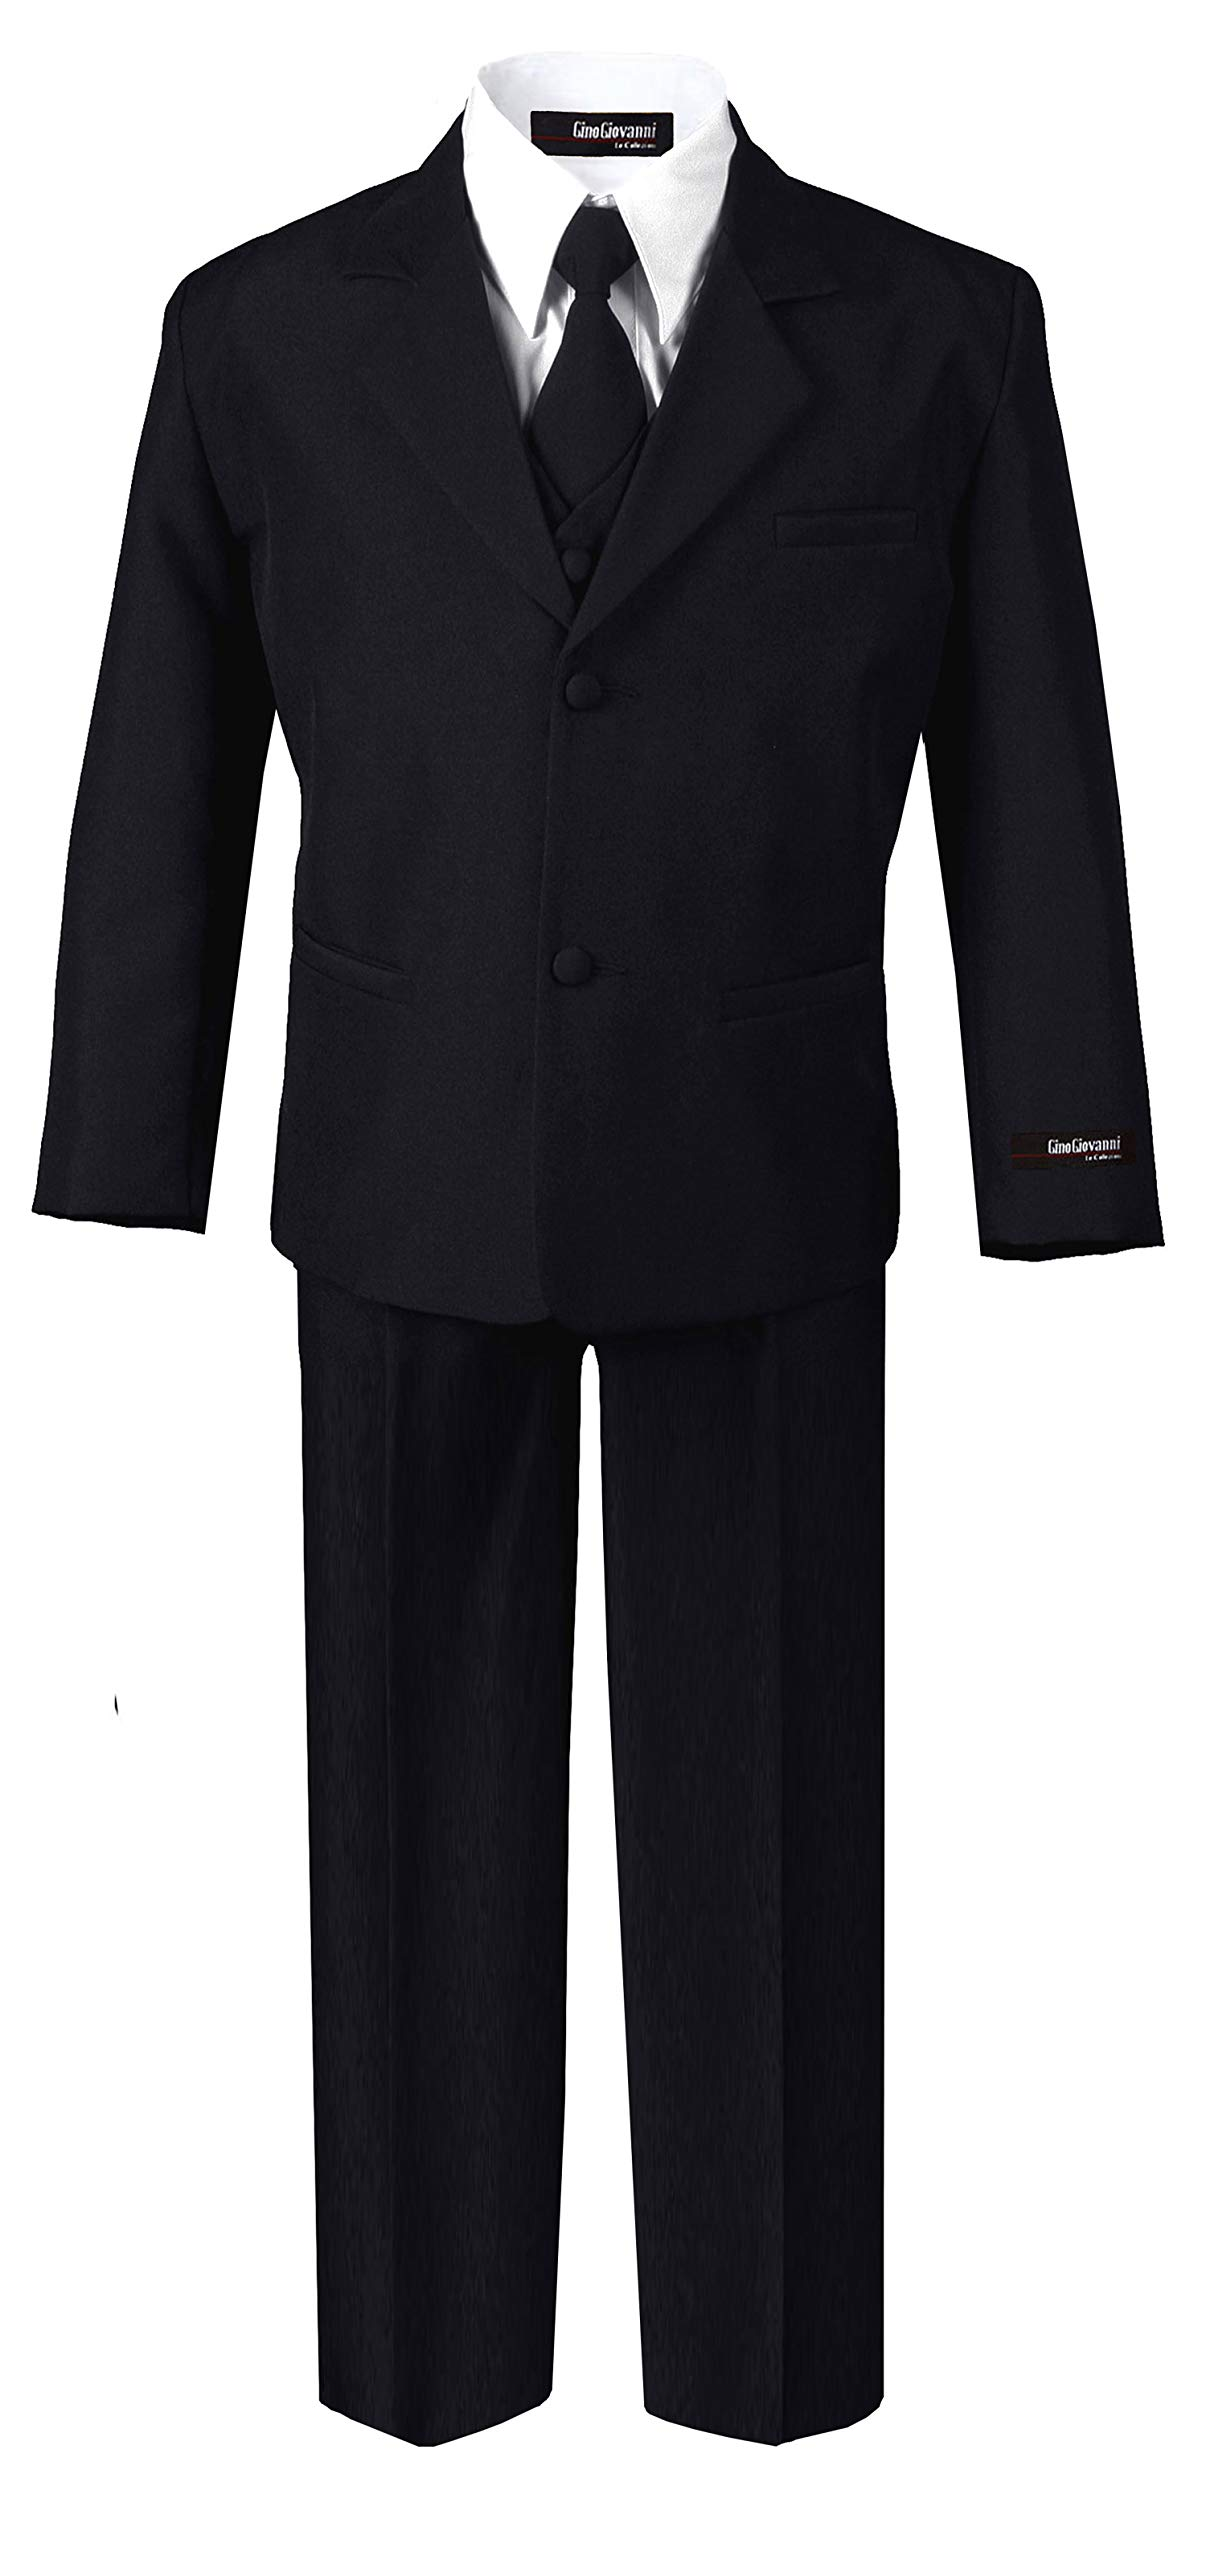 US Fairytailes Formal Boy Black Suit from Baby to Teen (8)